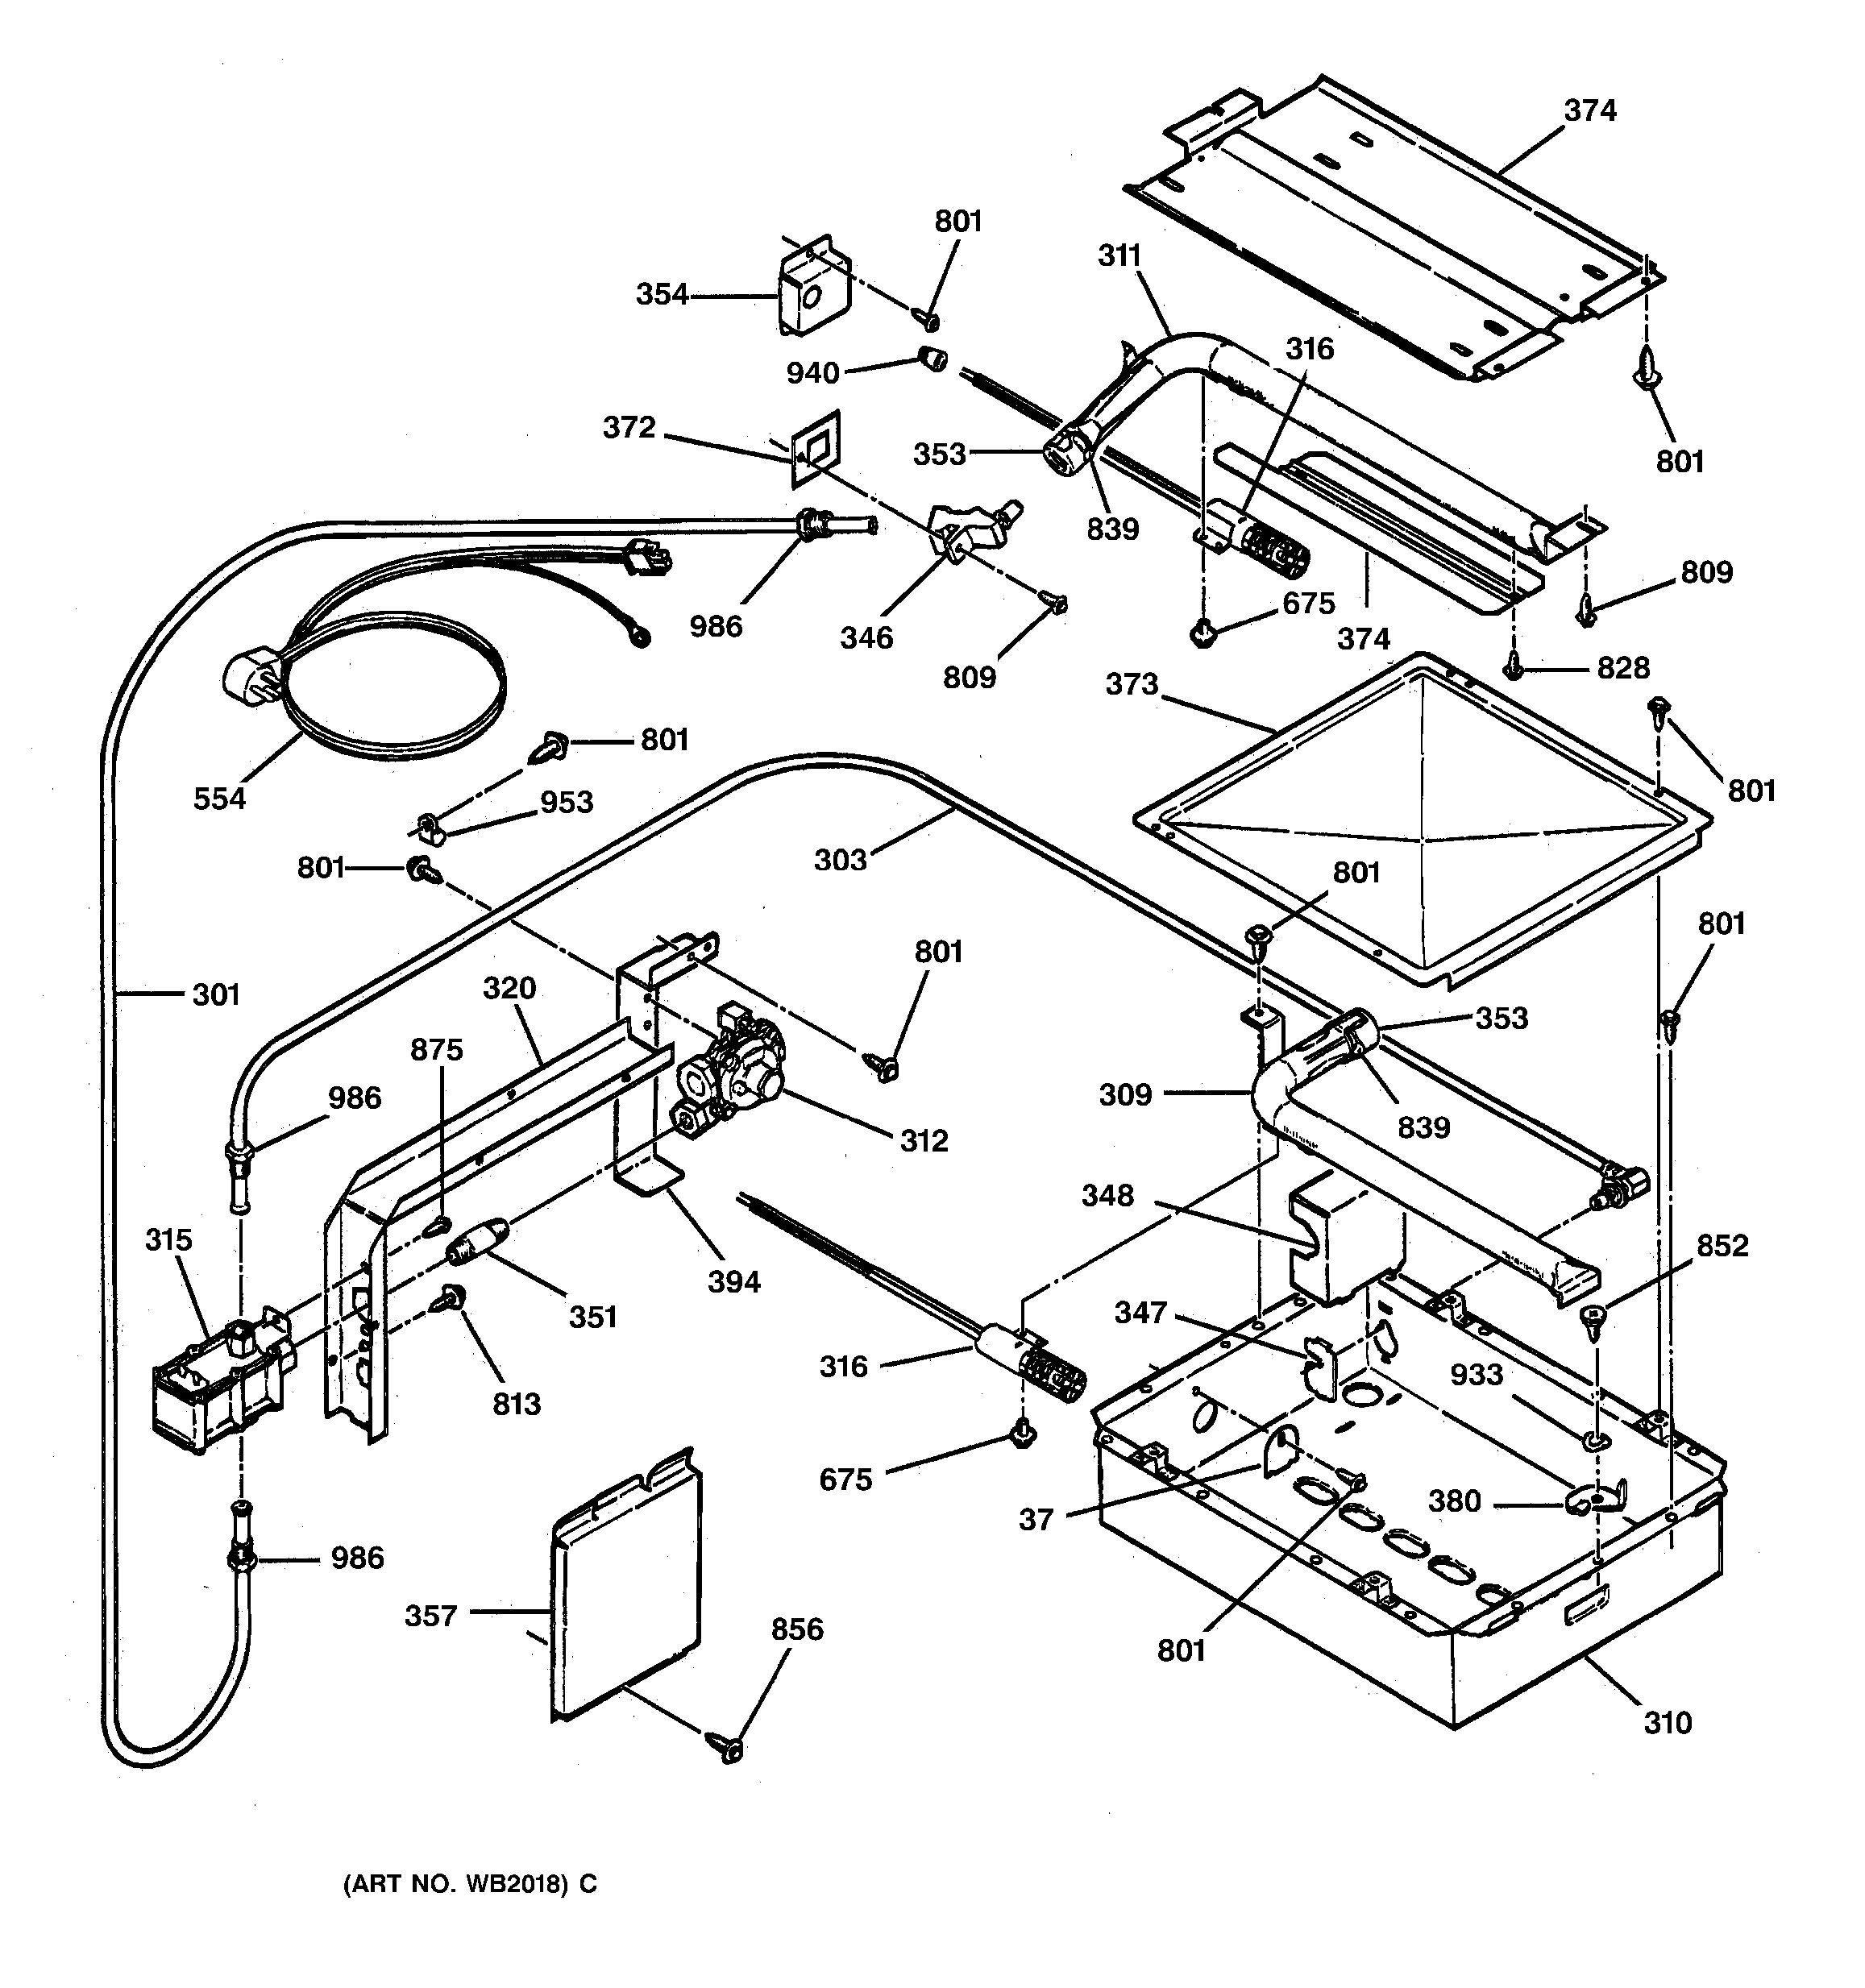 assembly view for gas burner